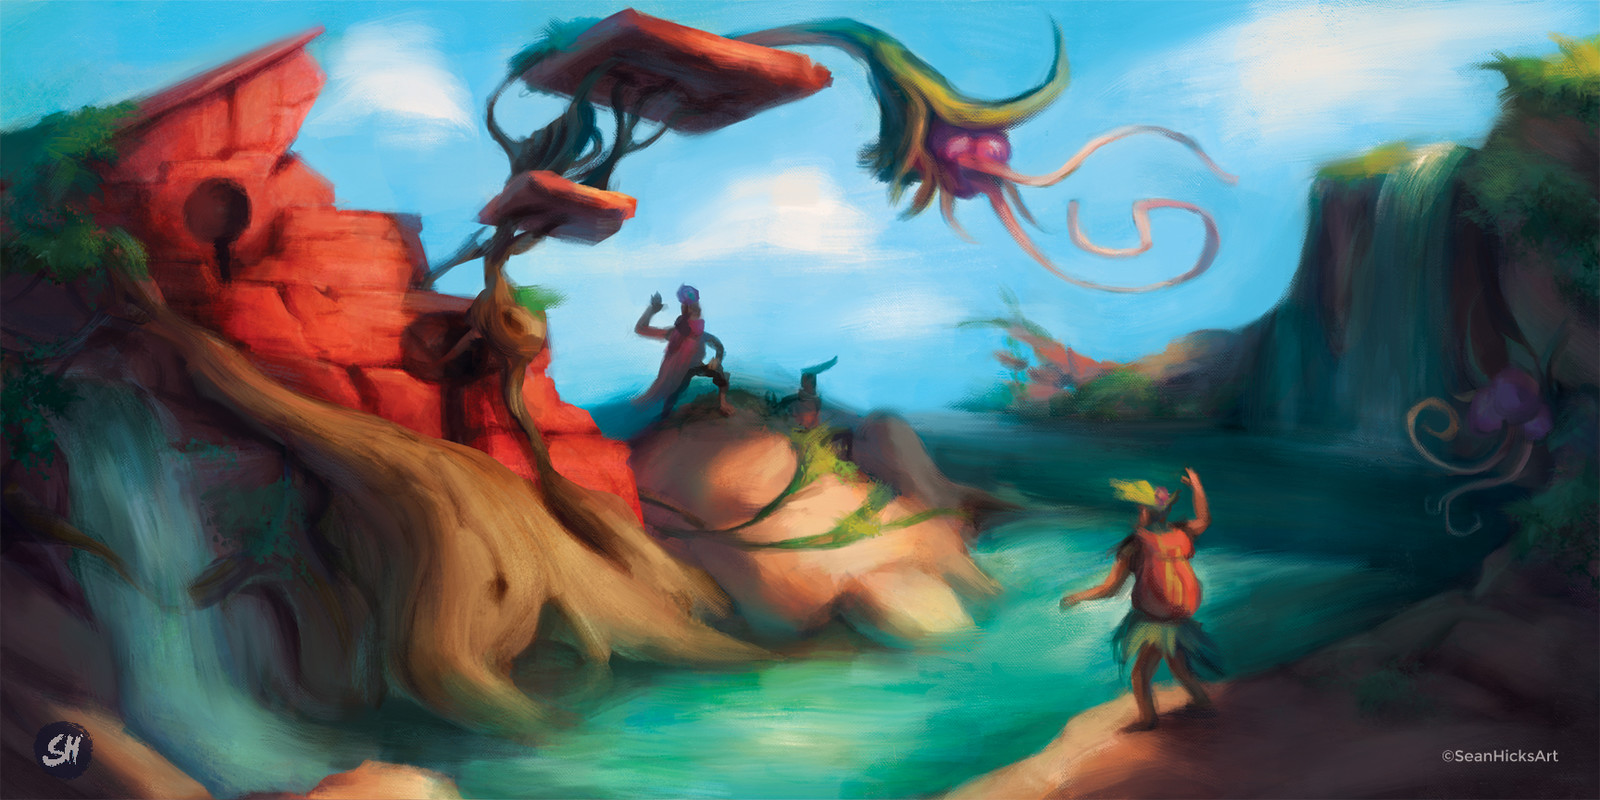 The final concept painting.